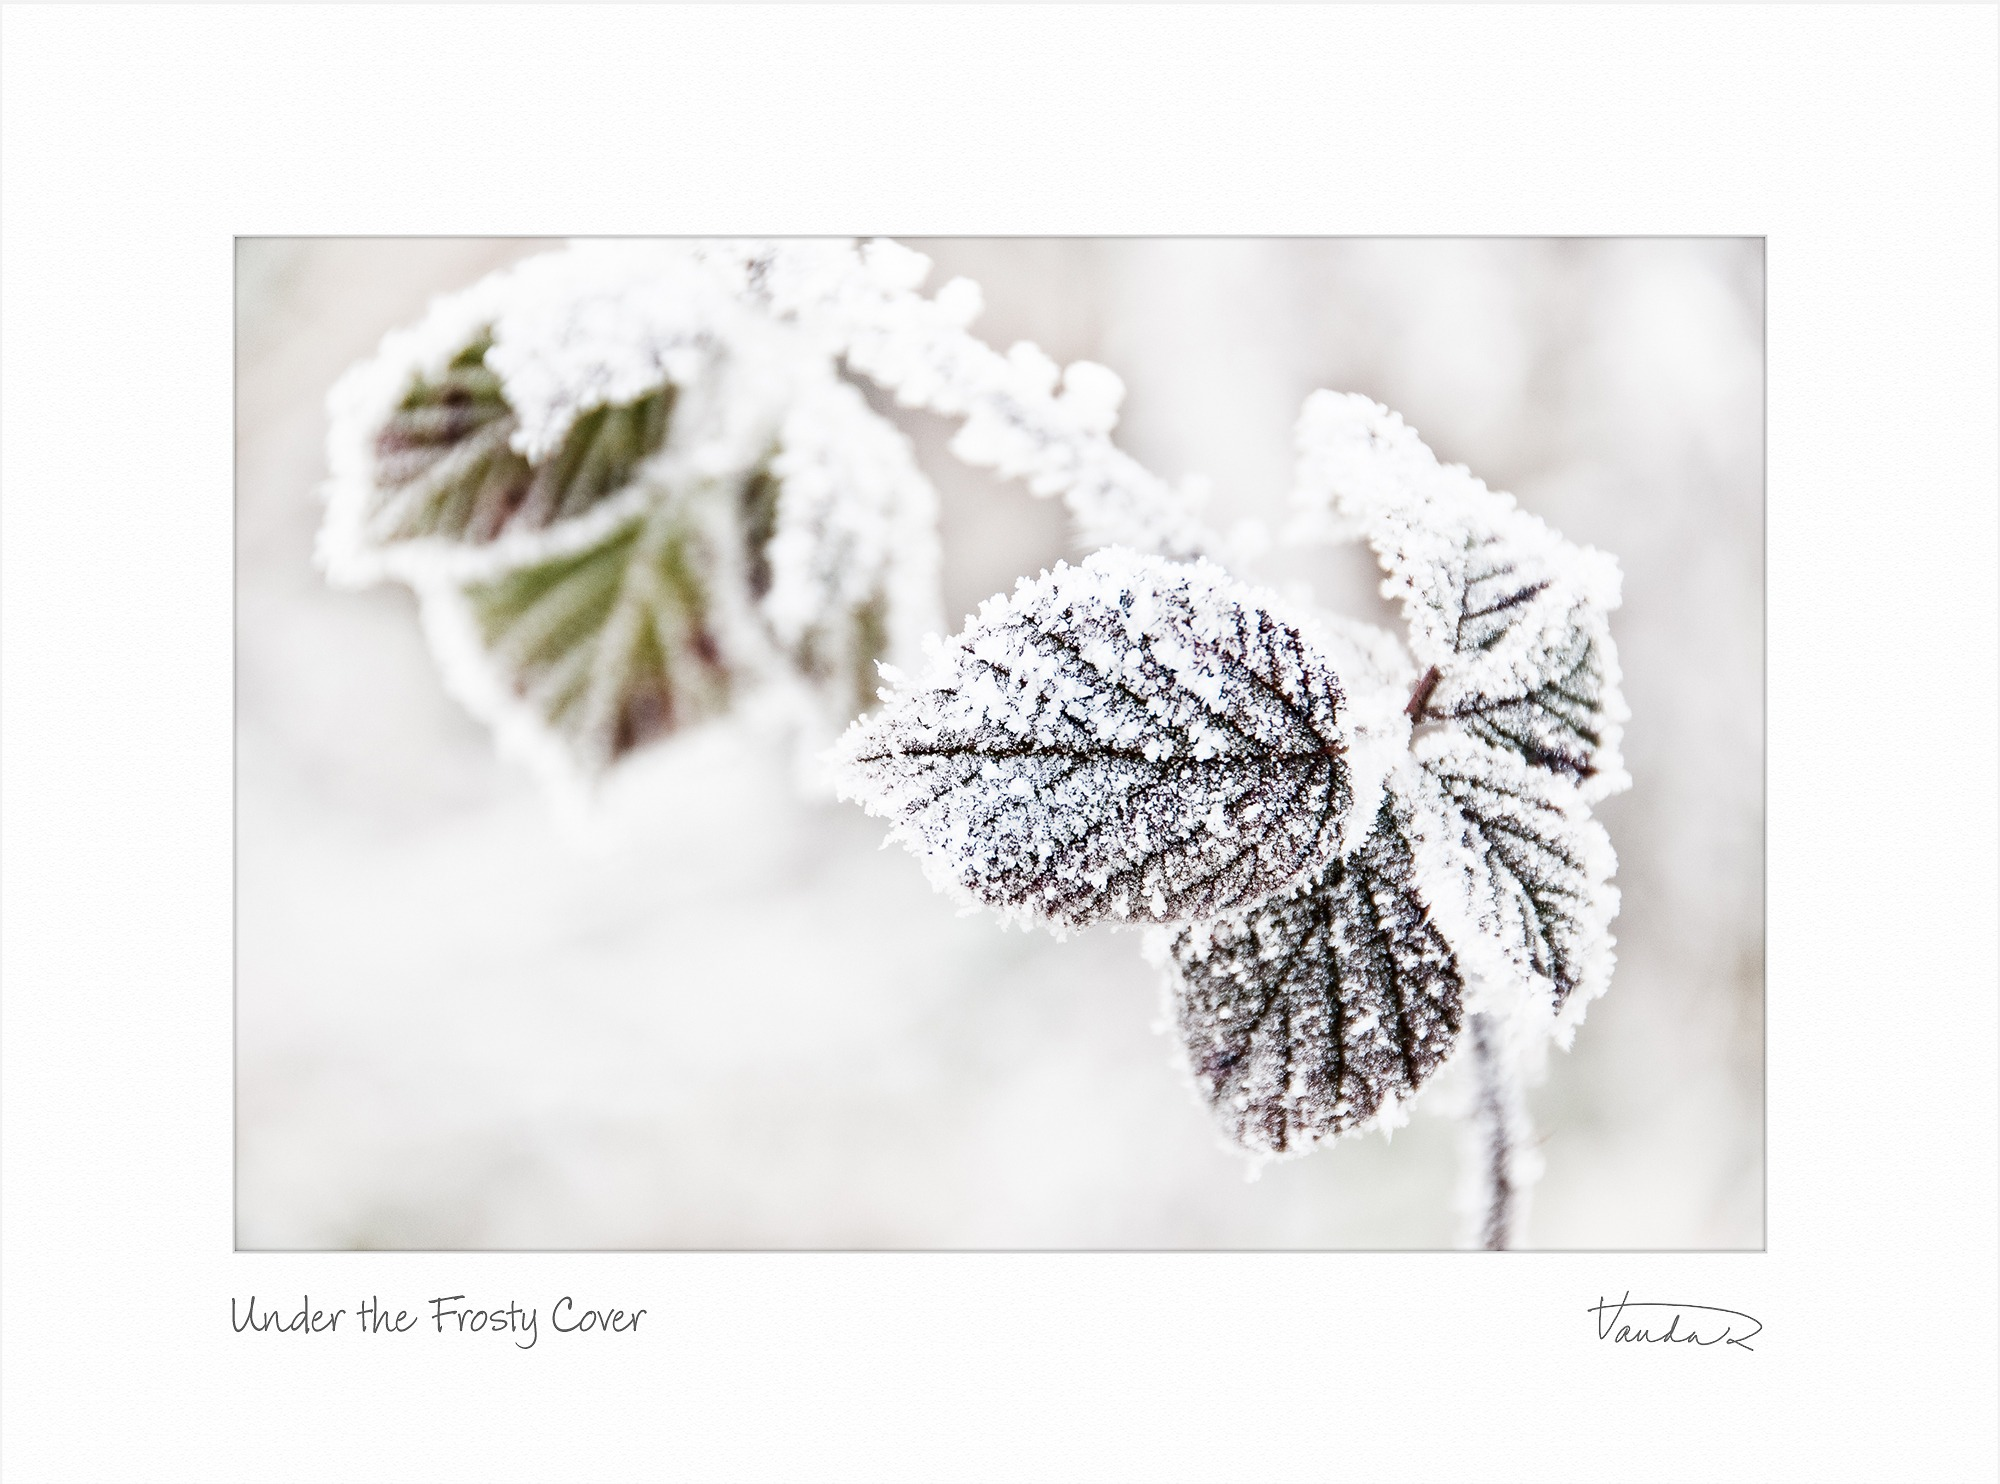 Under the Frosty Cover